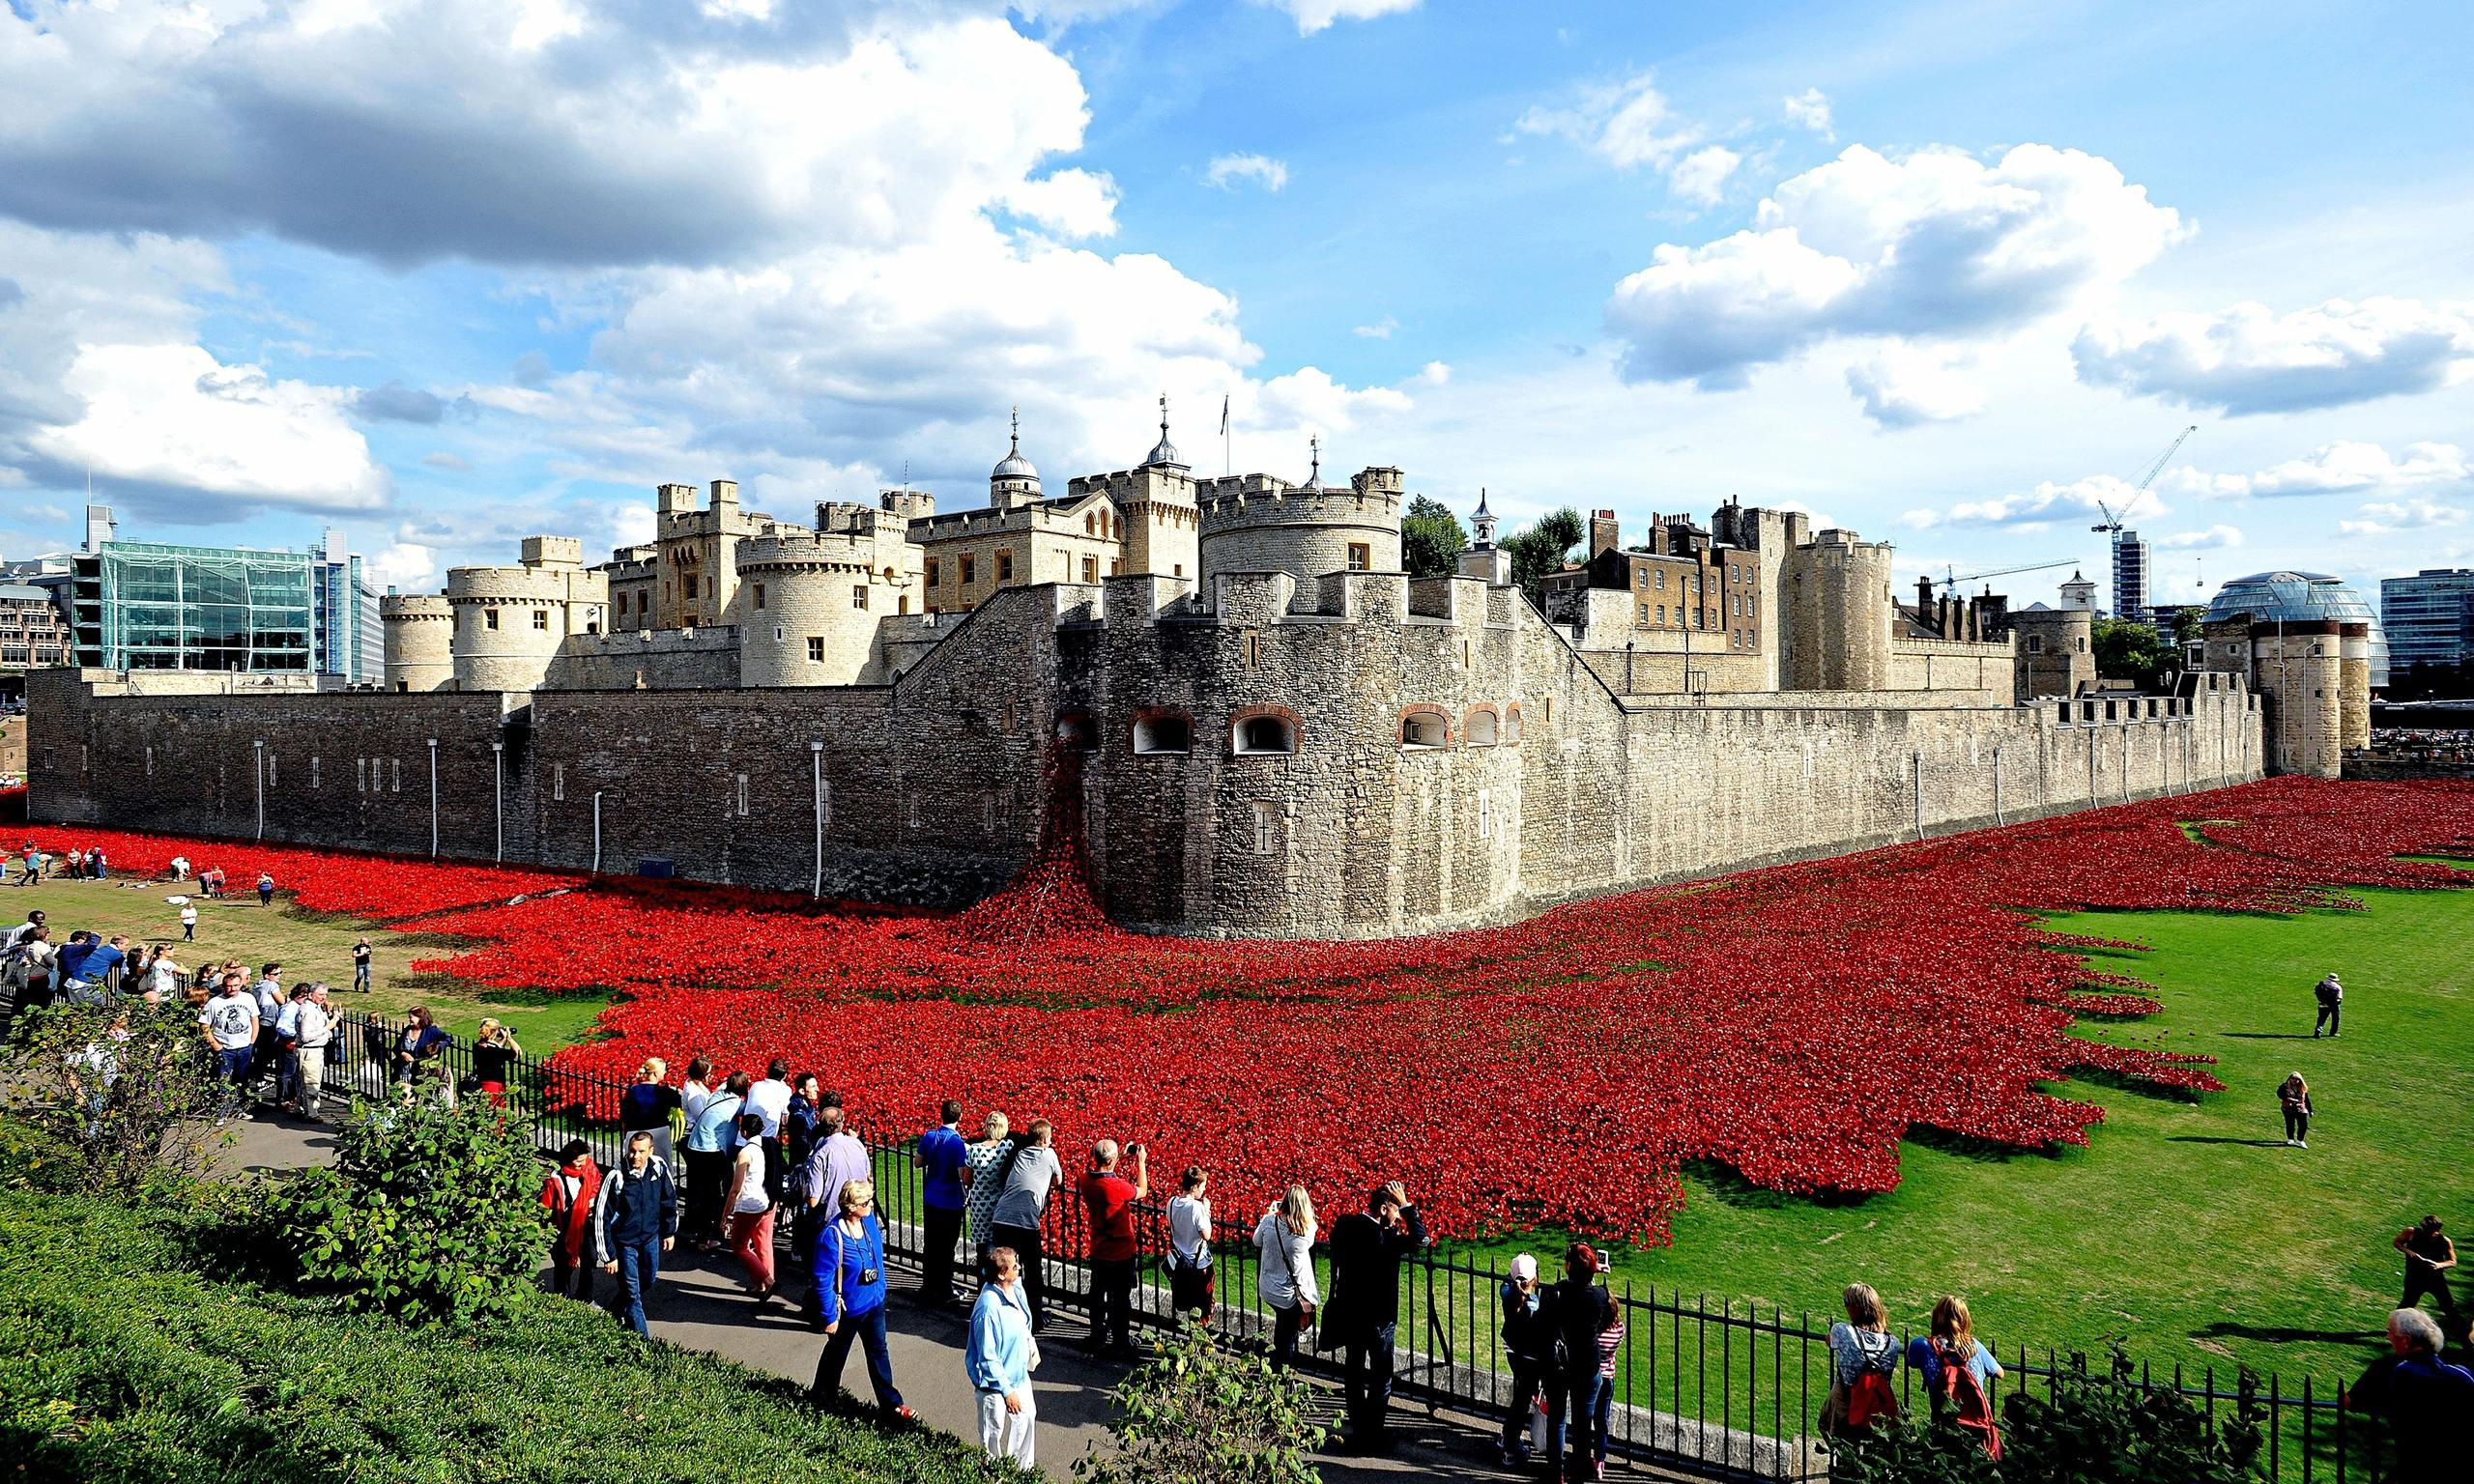 Art Installation Tower of London Poppies Tower of London Poppies 'this